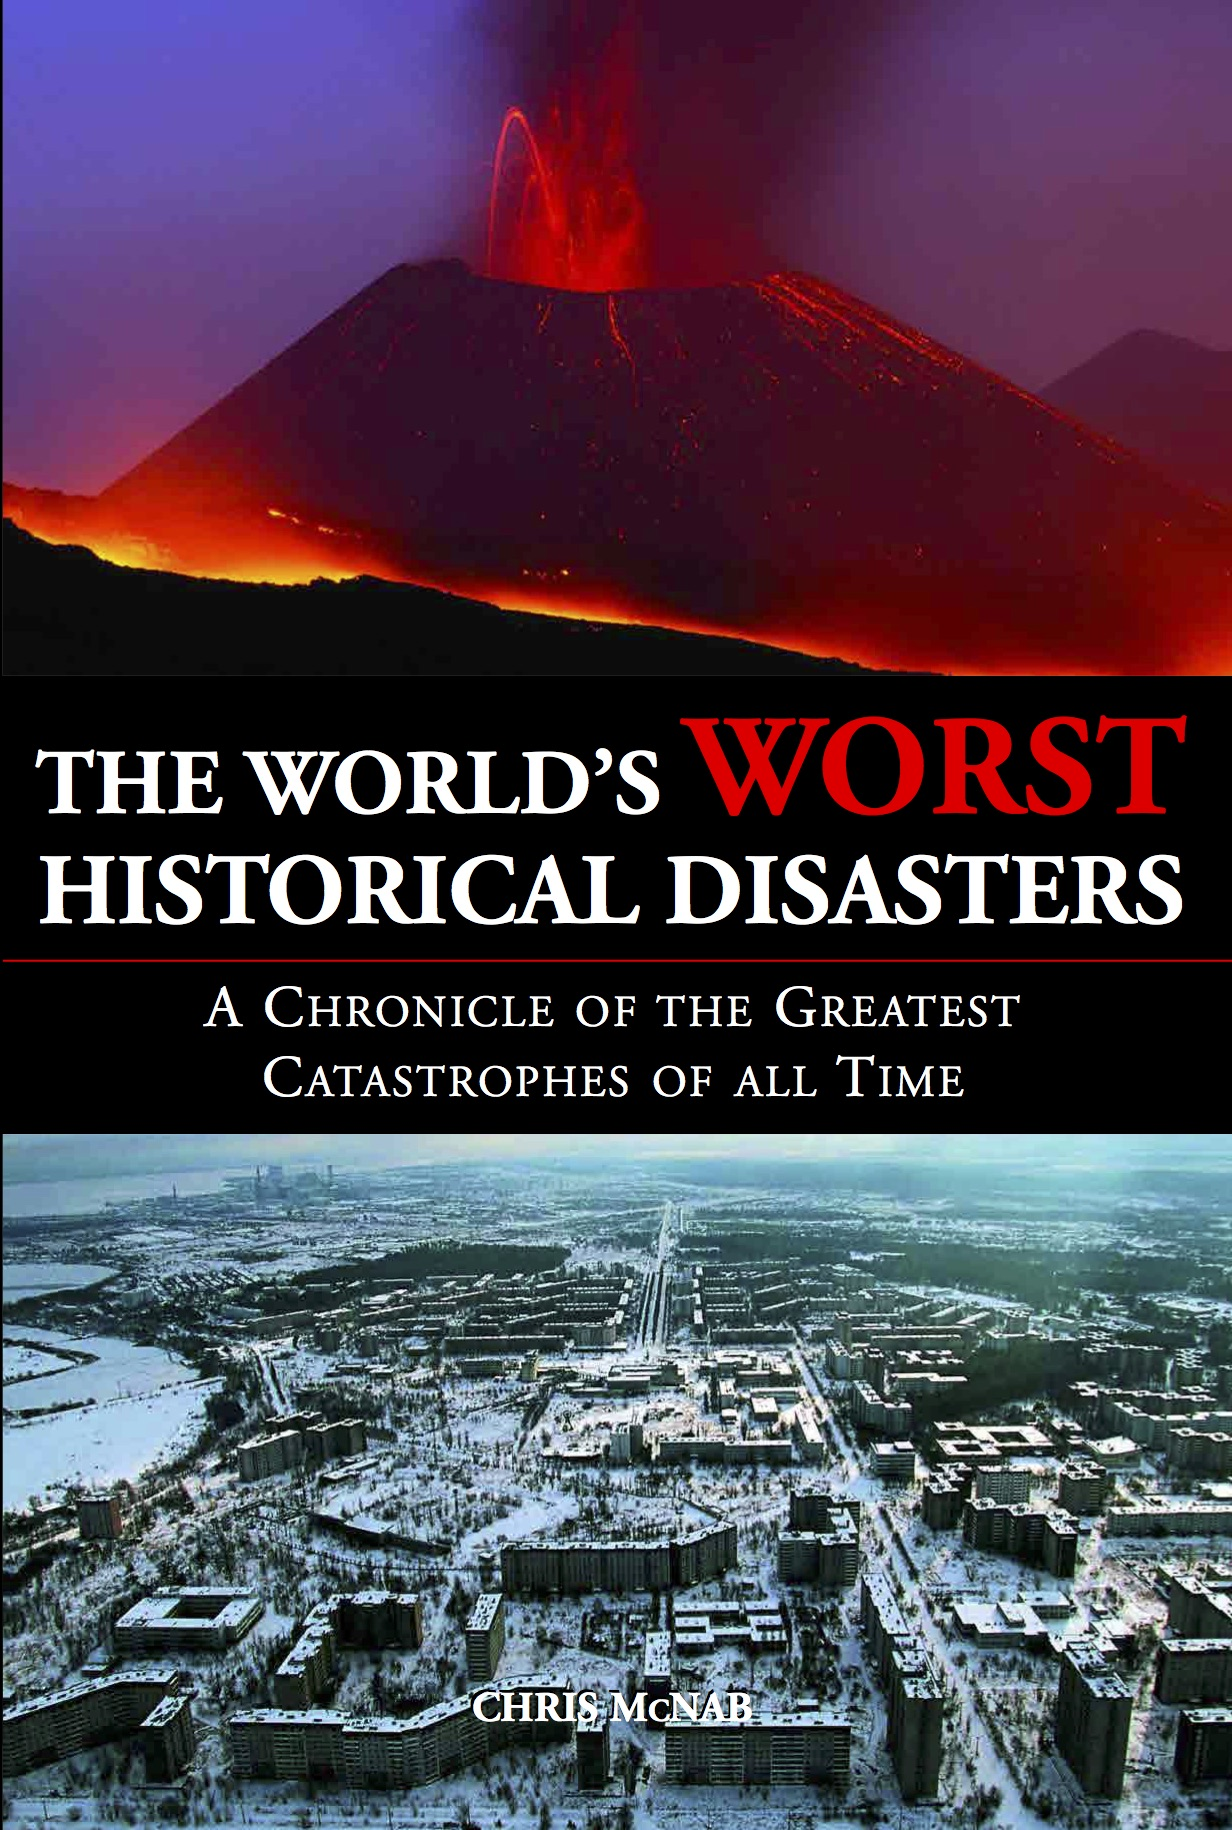 The World's Worst Historical Disasters